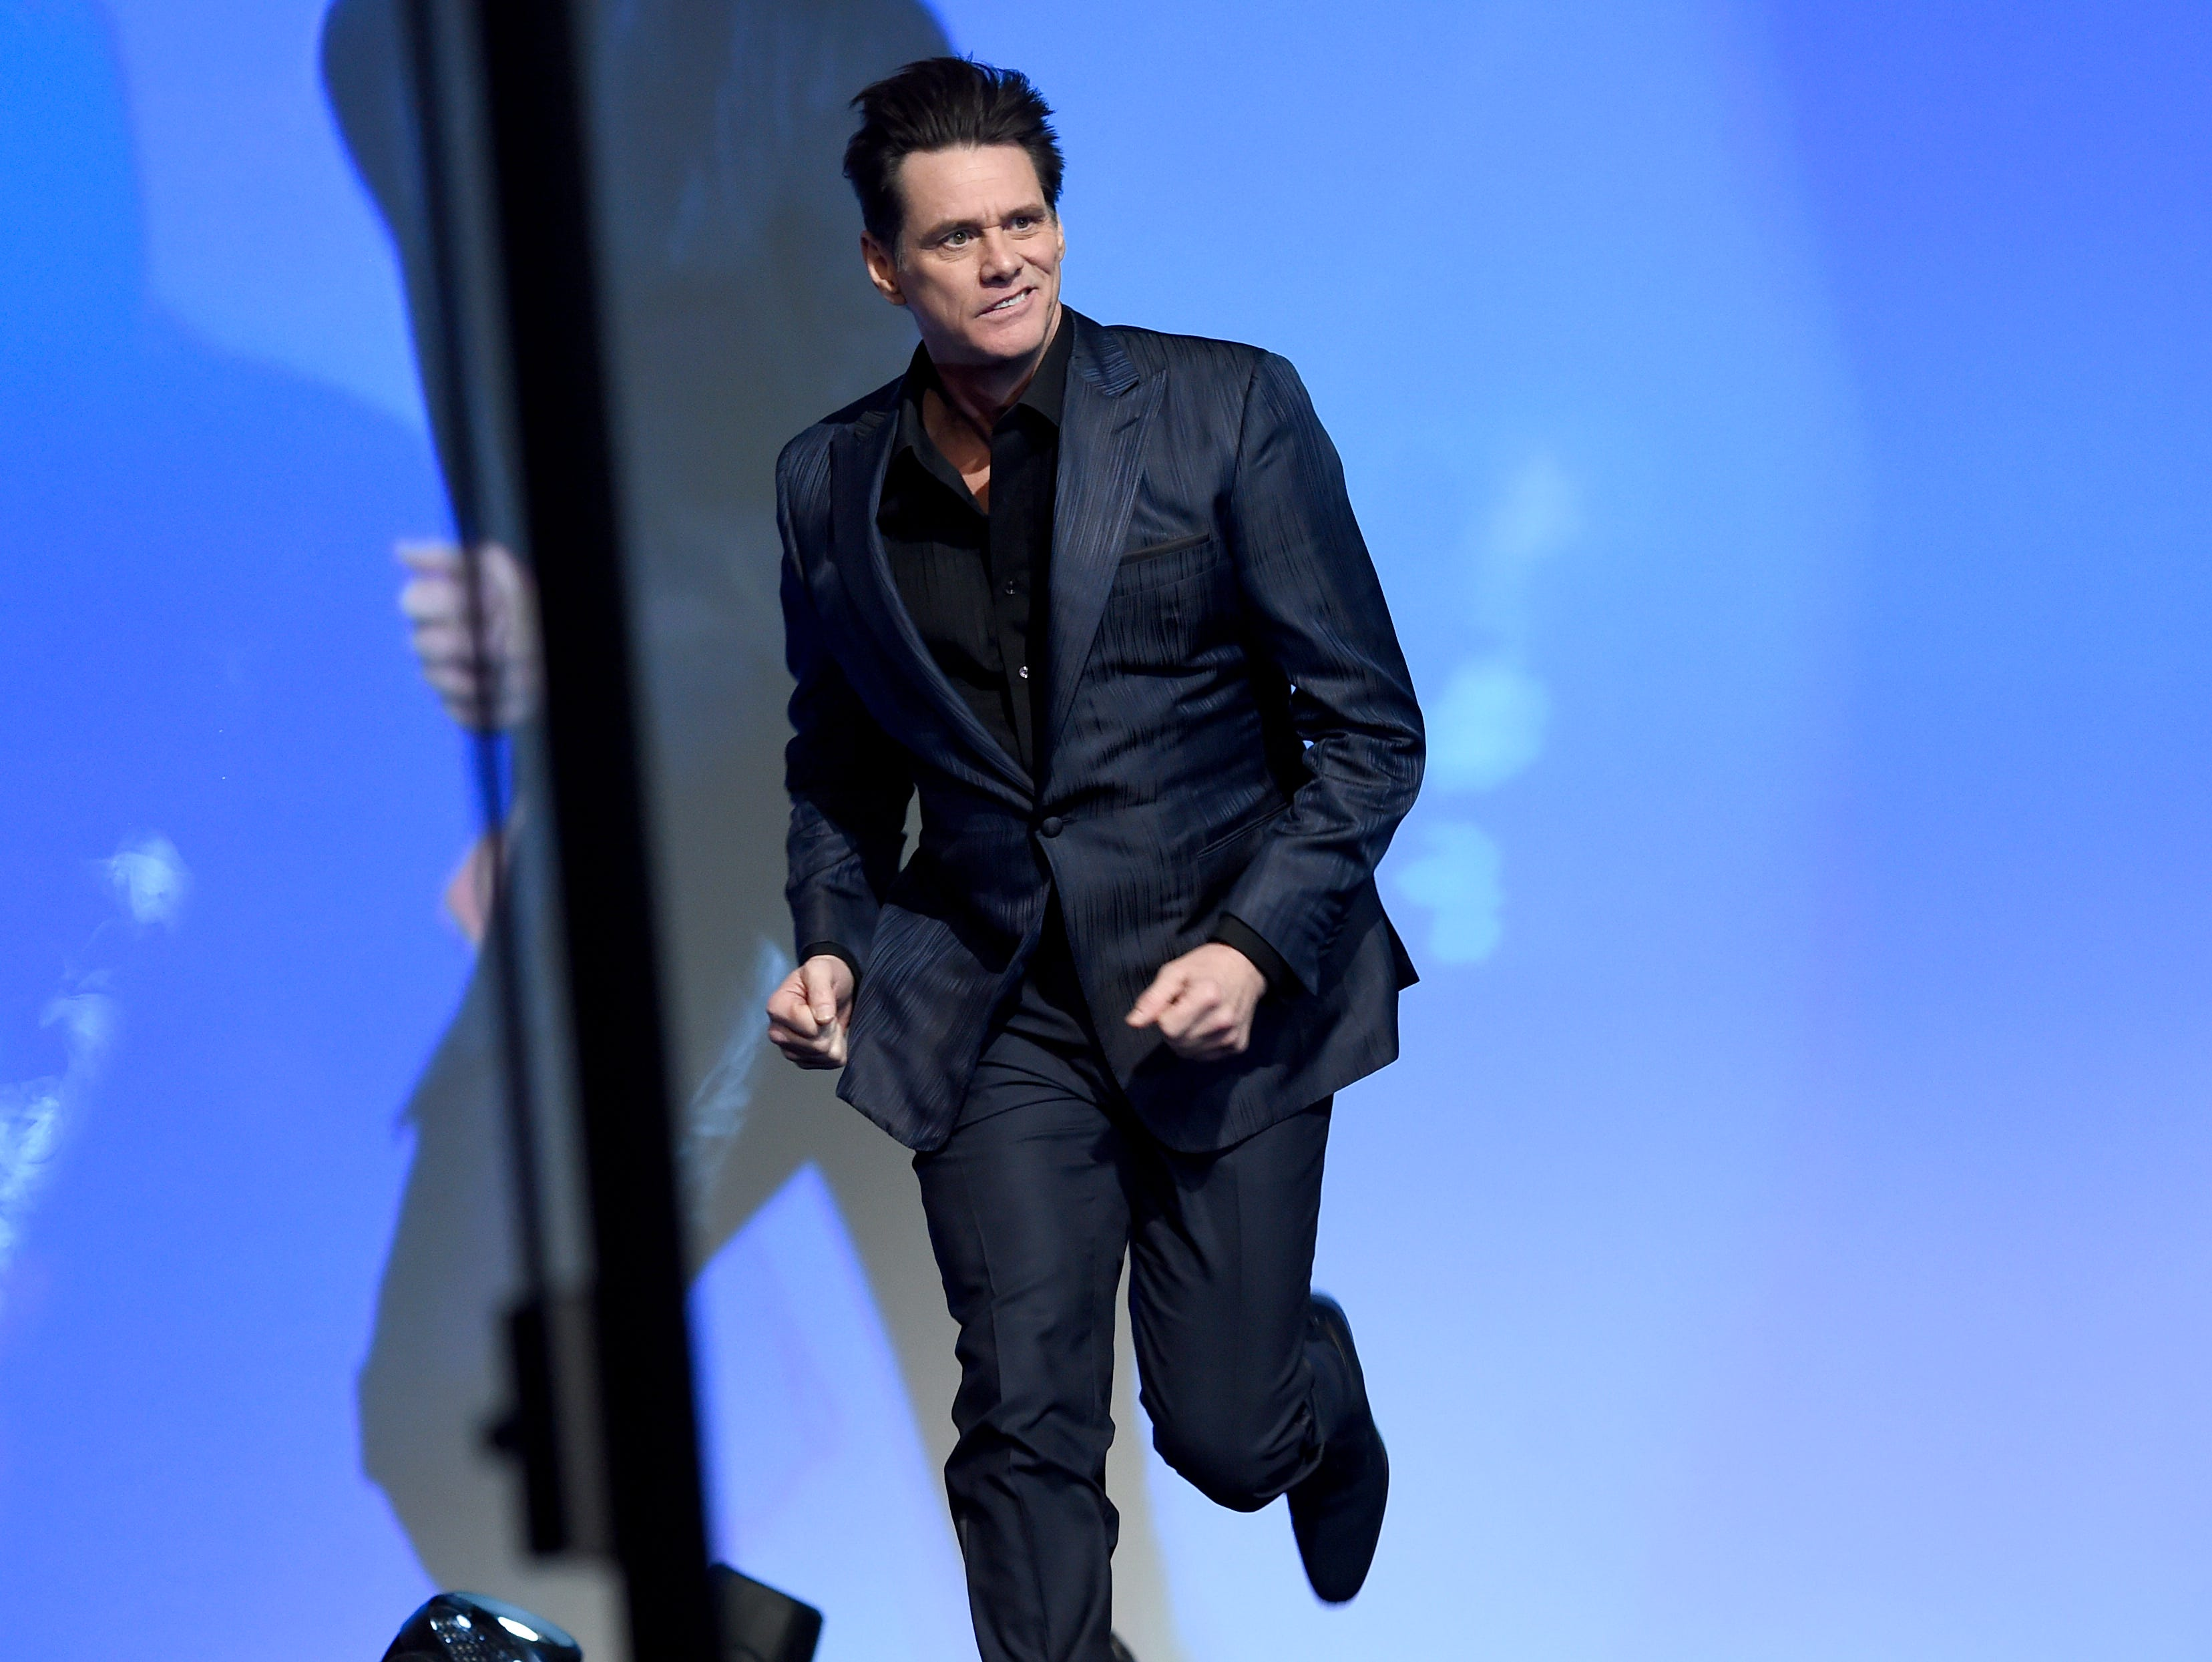 Jim Carrey runs on stage to presents the vanguard award at the 30th annual Palm Springs International Film Festival on Thursday, Jan. 3, 2019, in Palm Springs, Calif. (Photo by Chris Pizzello/Invision/AP) ORG XMIT: CADC255